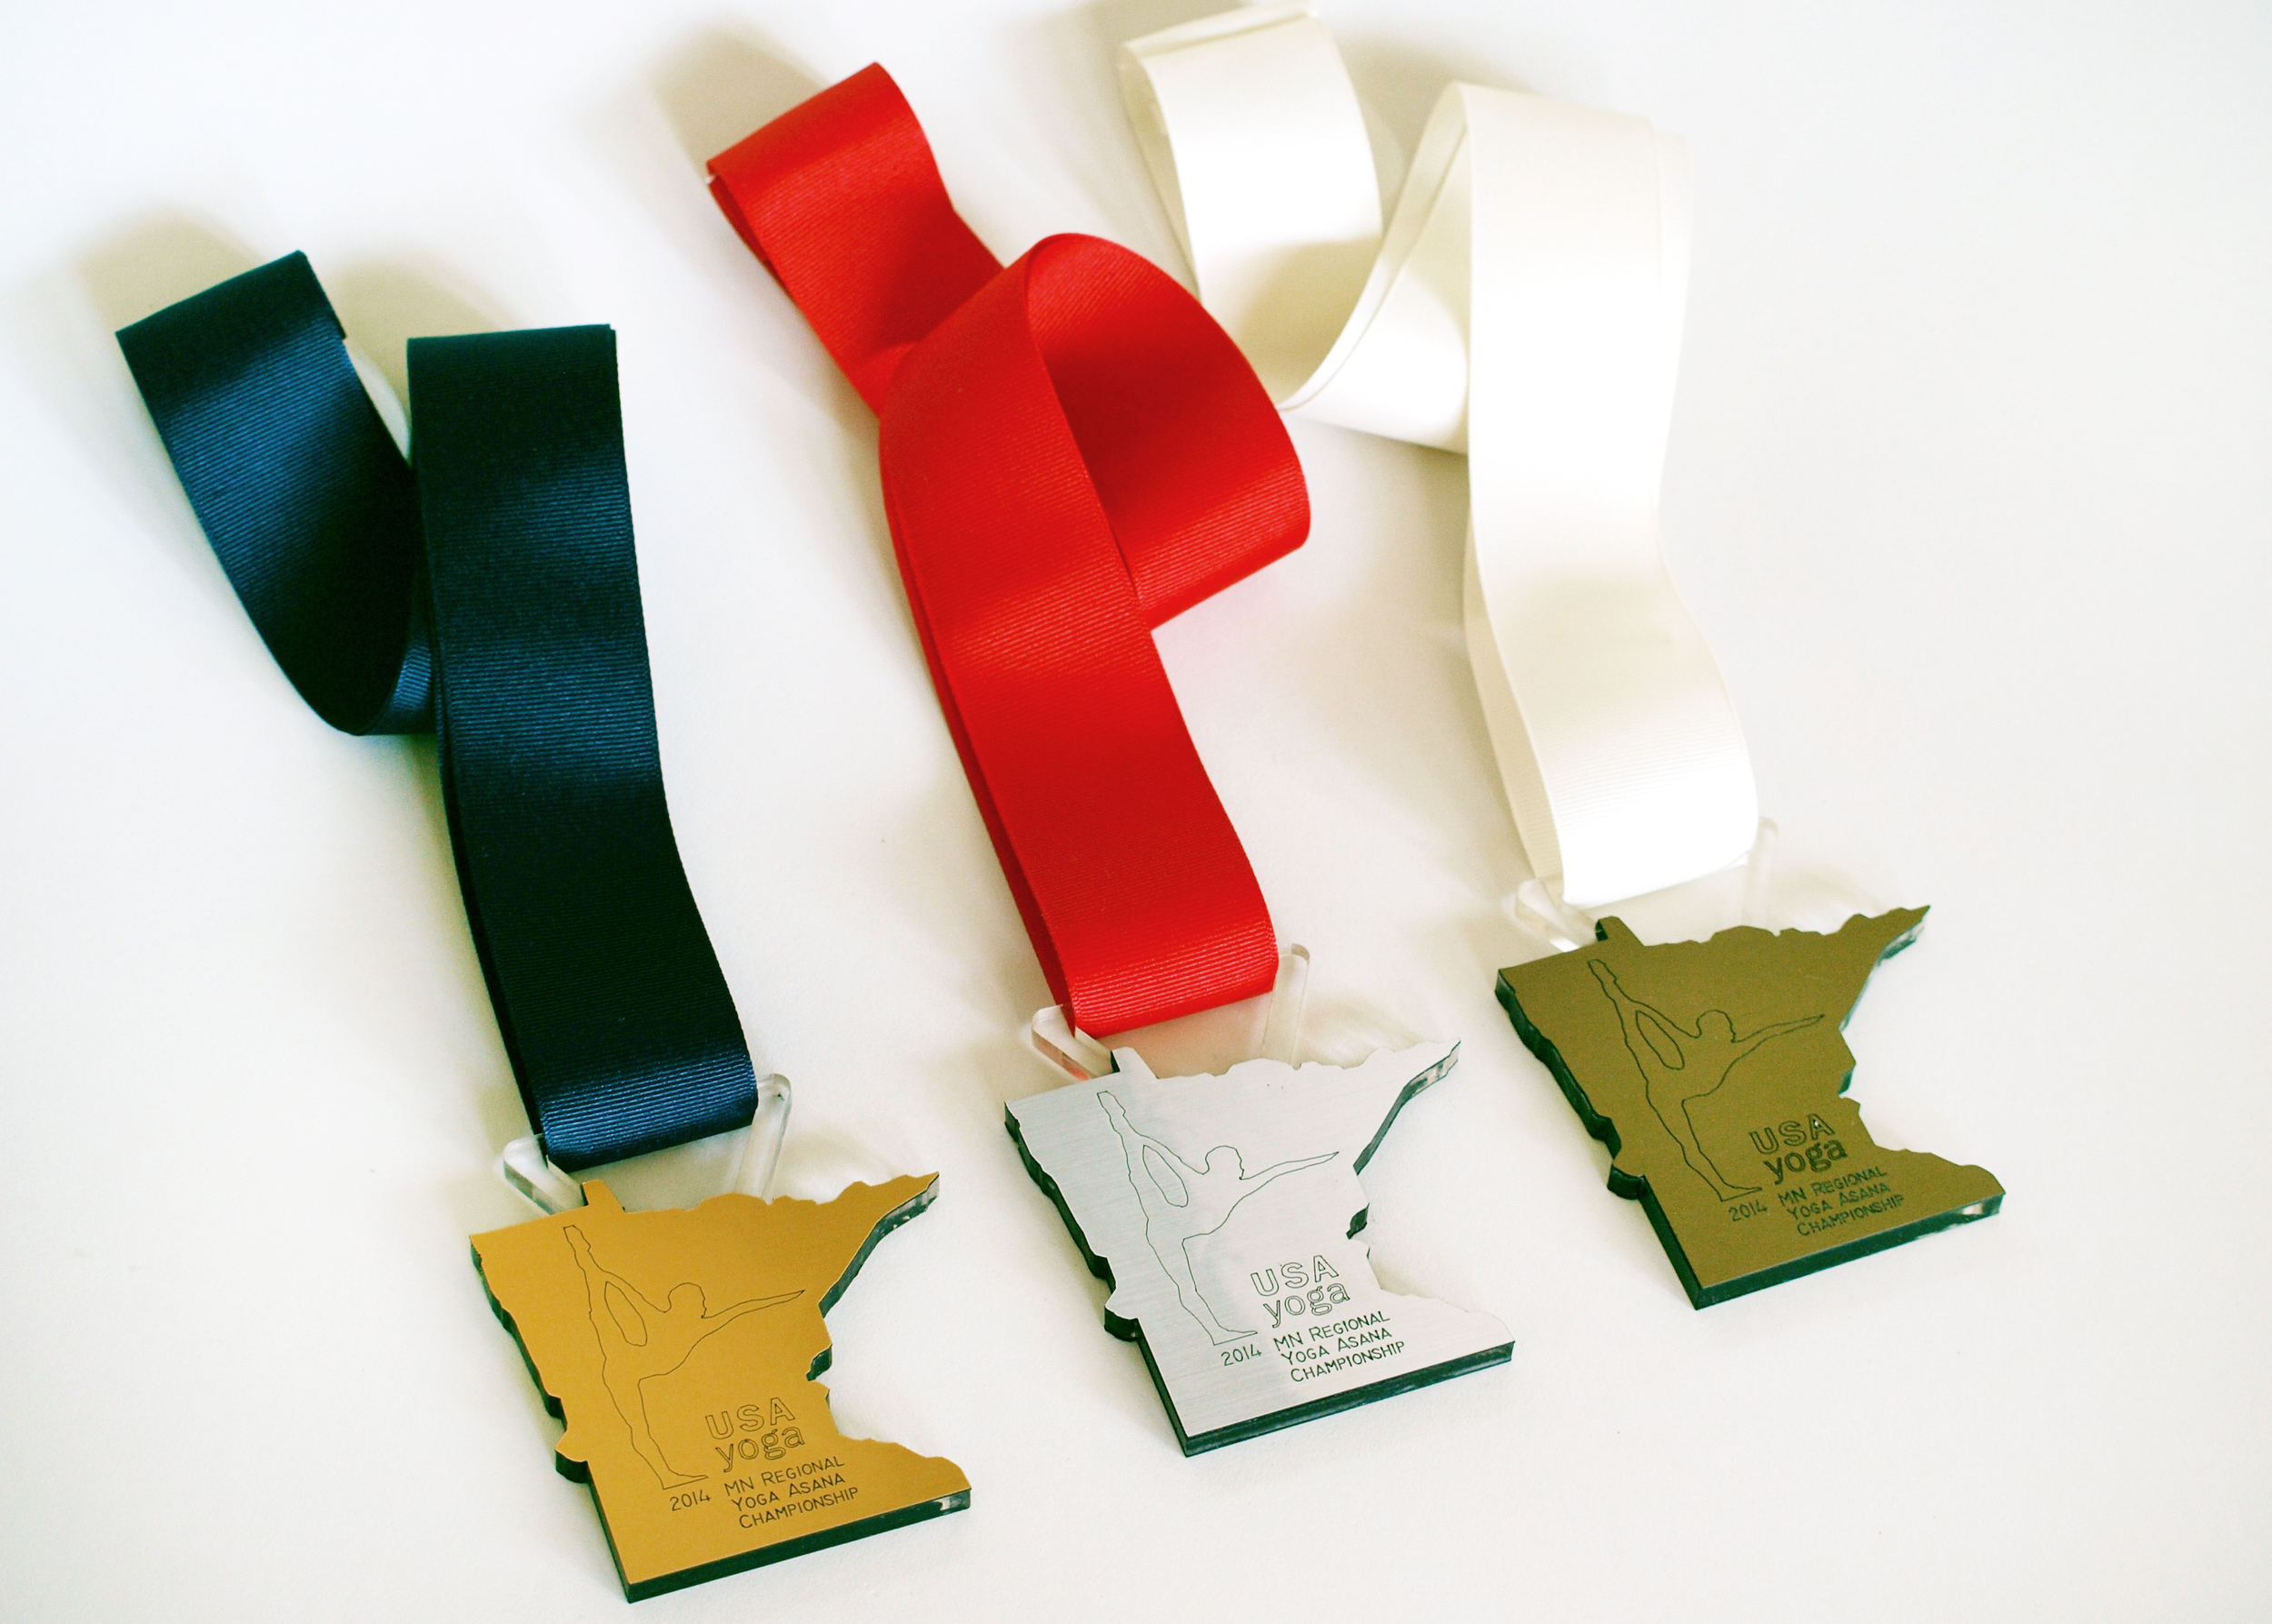 2014 YOGA MEDALS_cropped.jpg